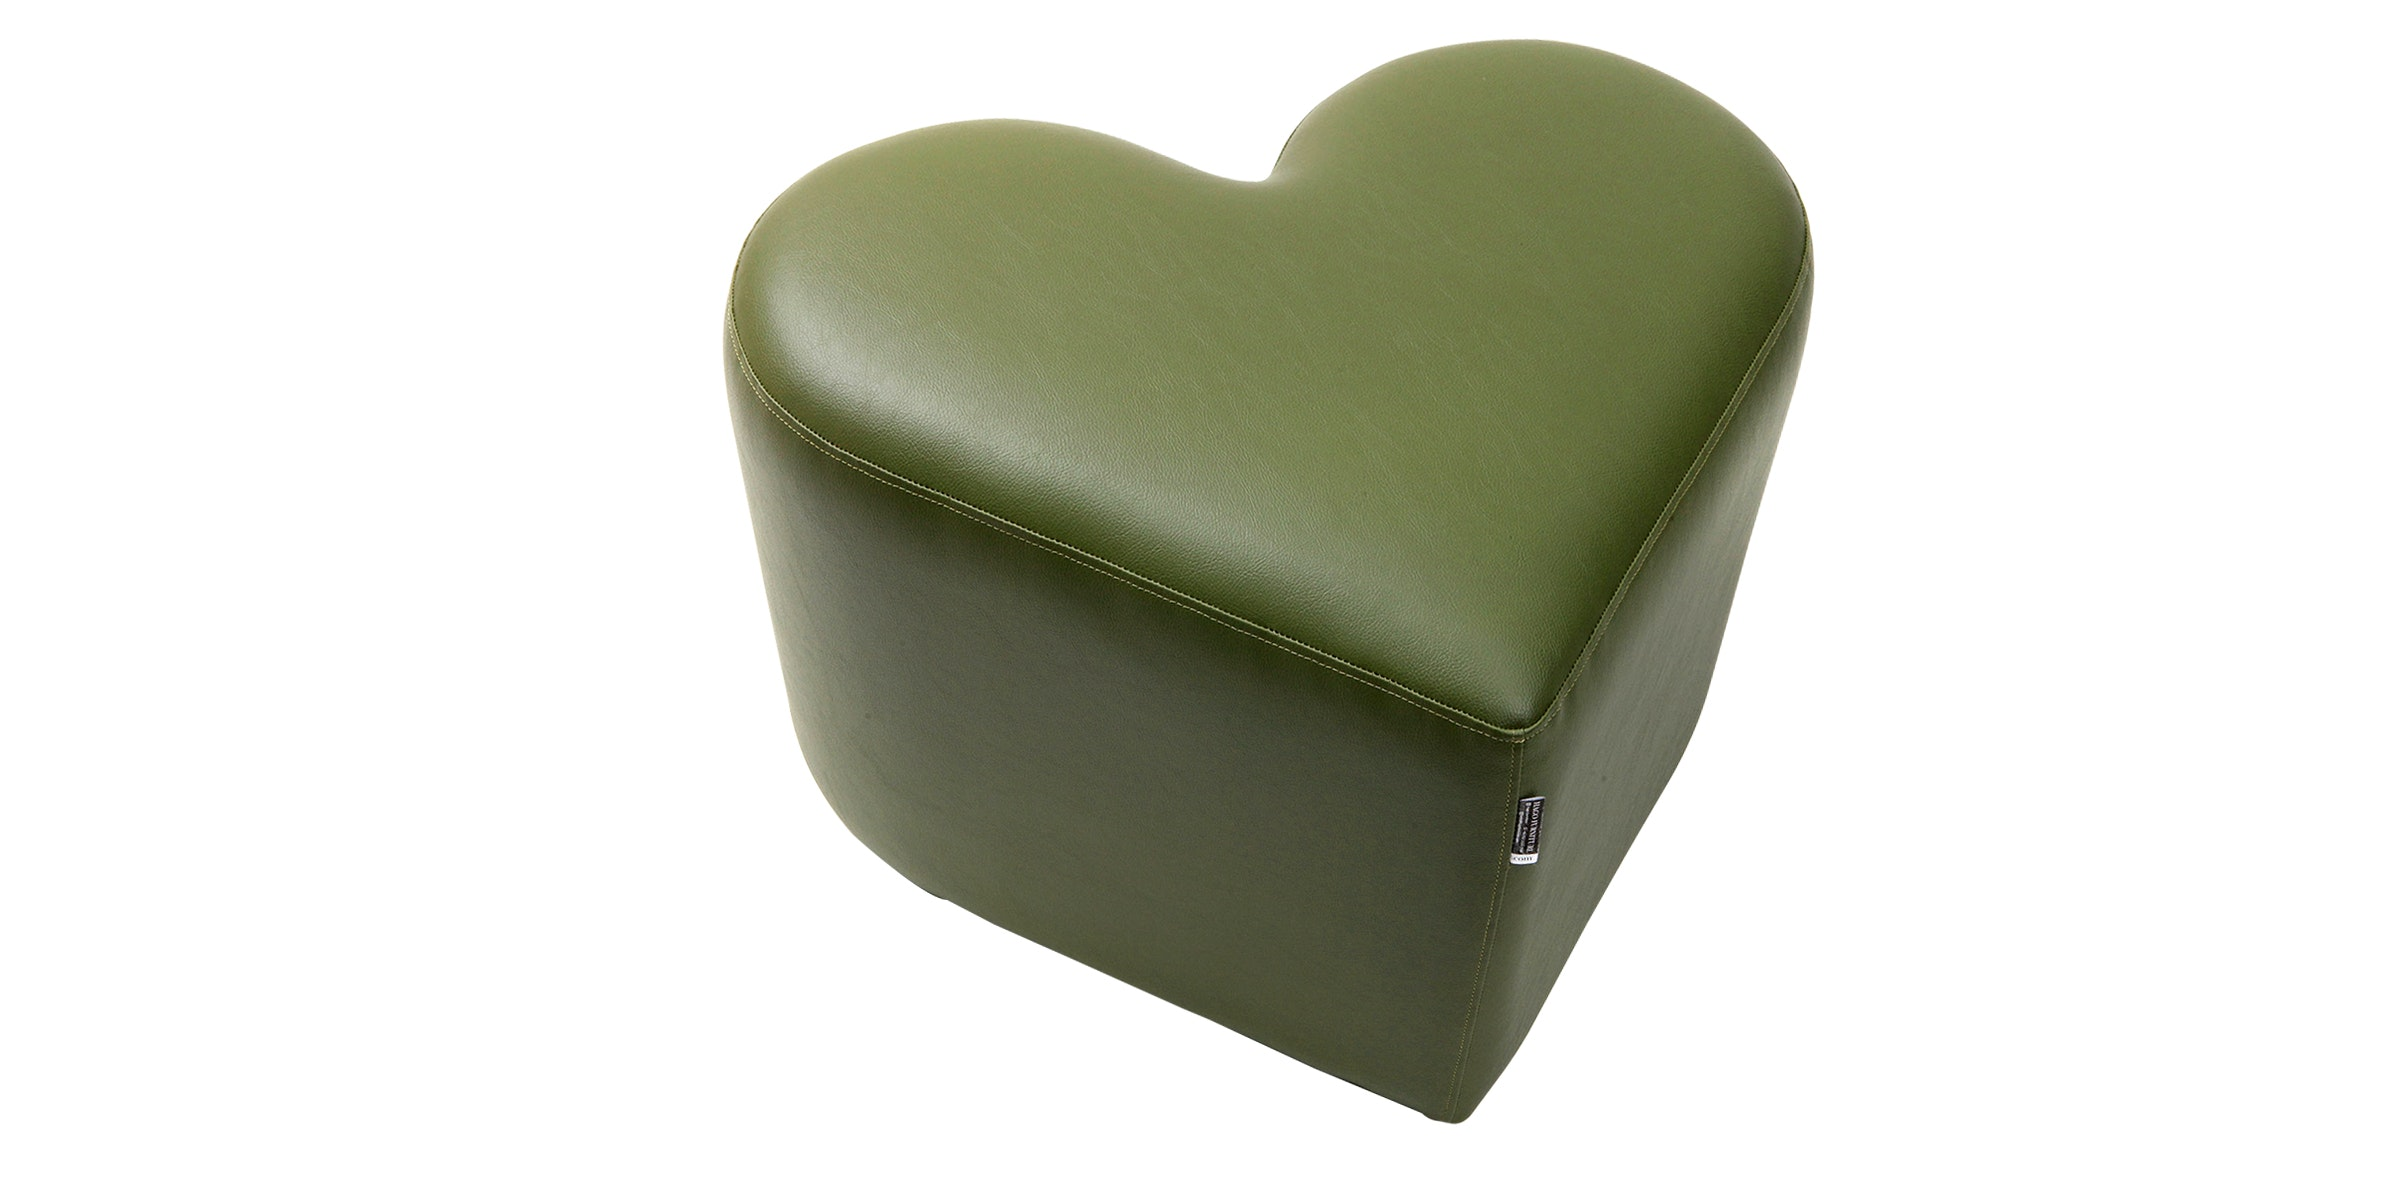 Hago Furniture Heart Unique Ottoman Hijau Tua